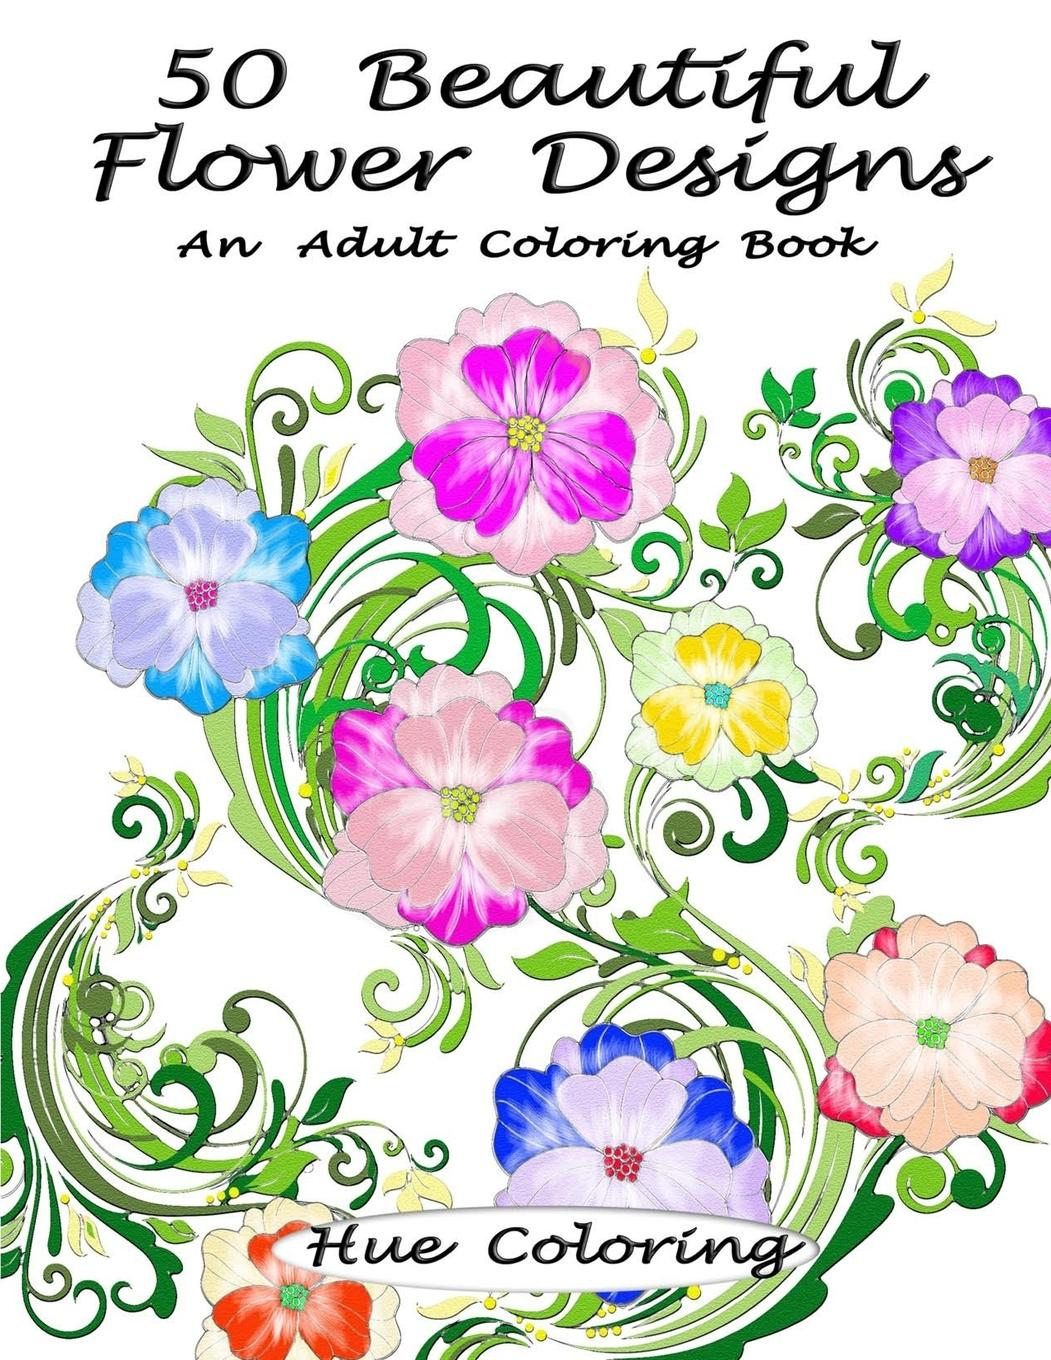 50 Beautiful Flower Designs An Adult Coloring Book Other